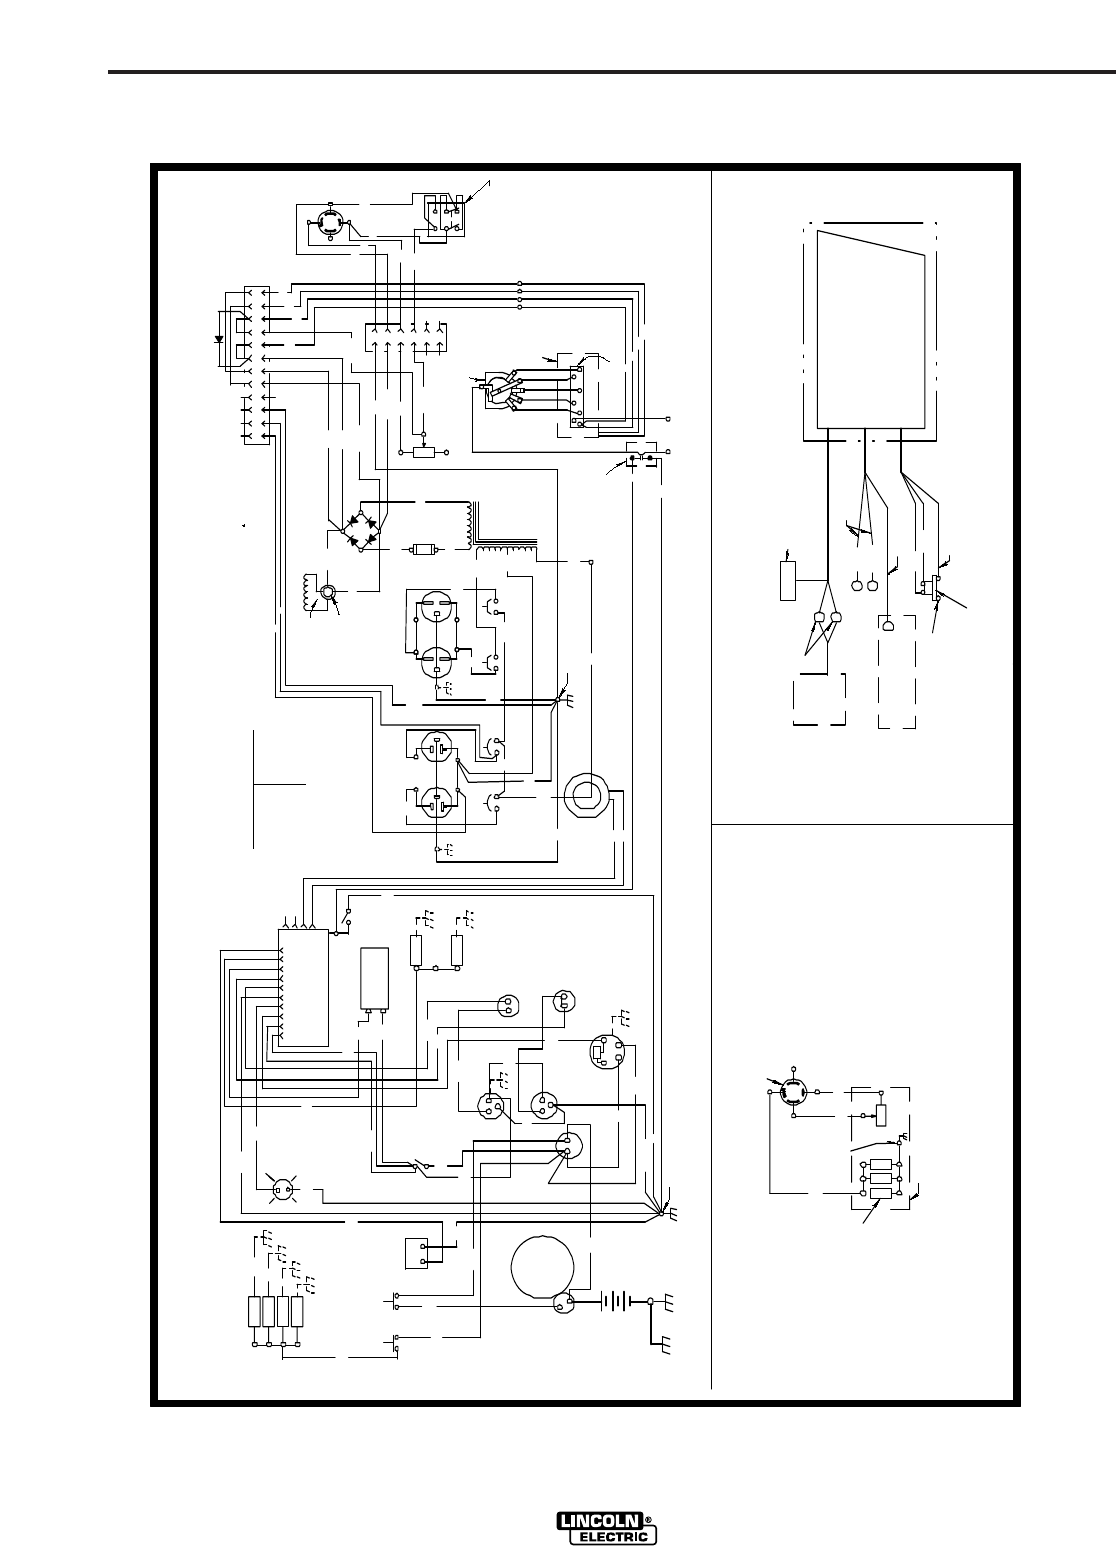 Exelent Hobart Mig Wire Collection - Electrical Diagram Ideas ...